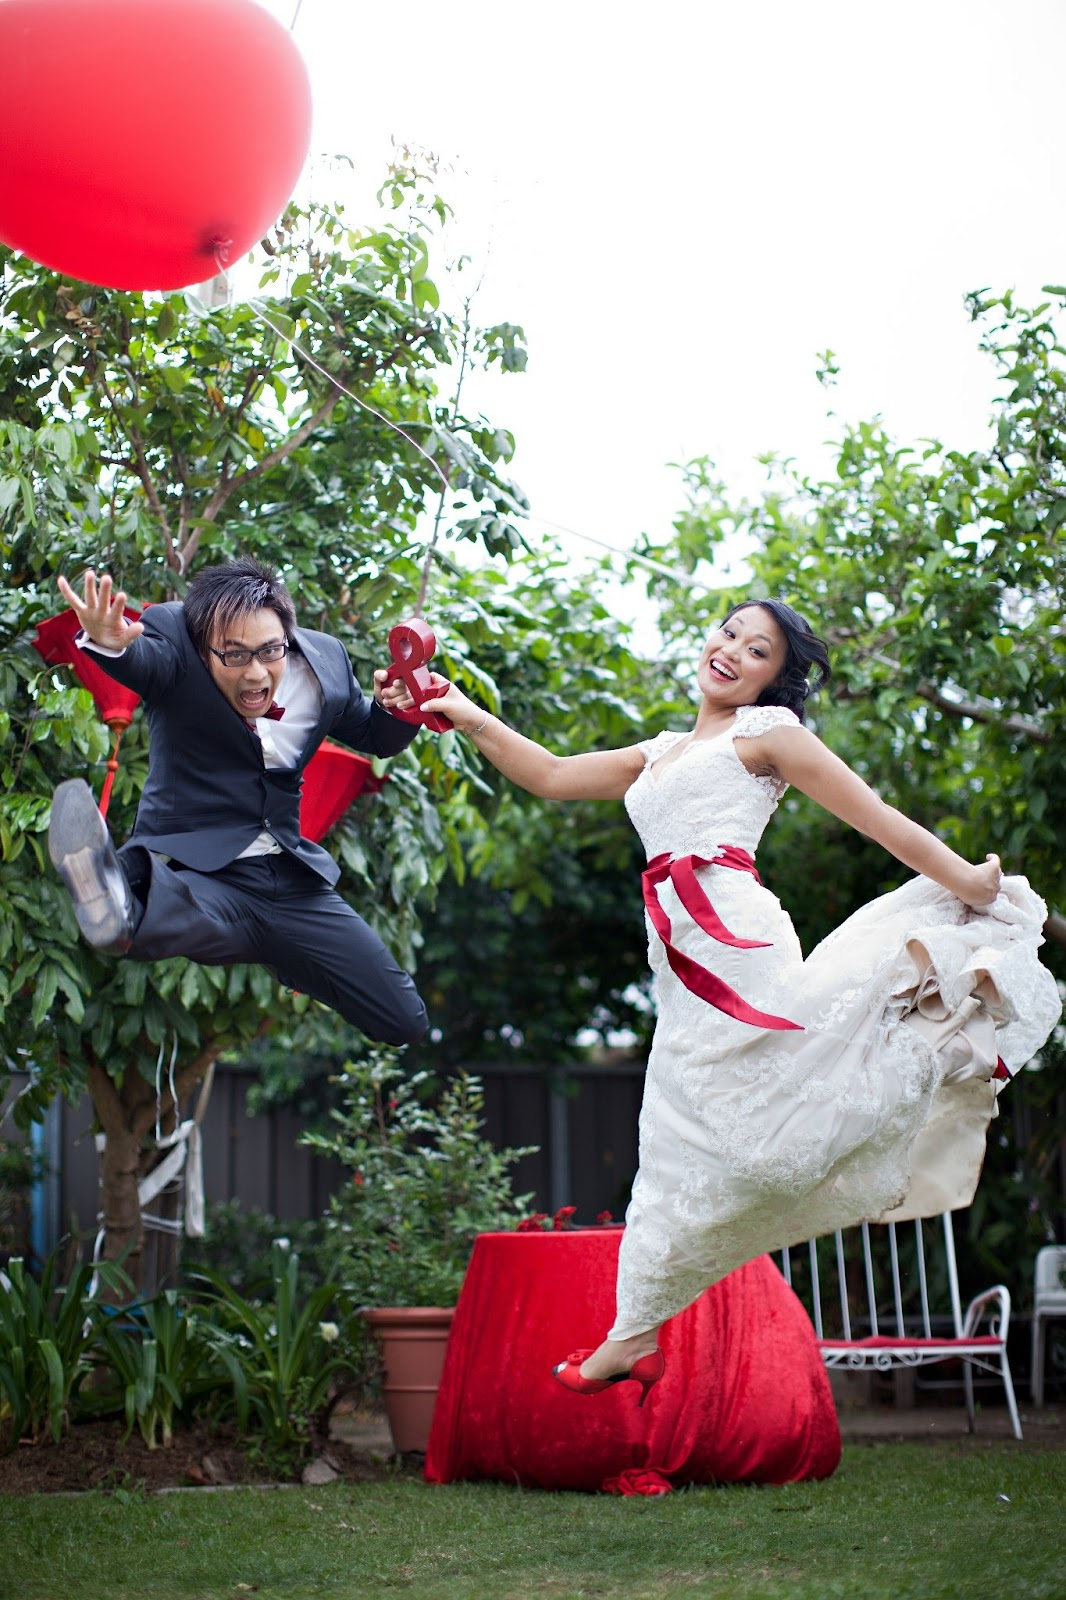 jumping wedding shot with balloons.JPG